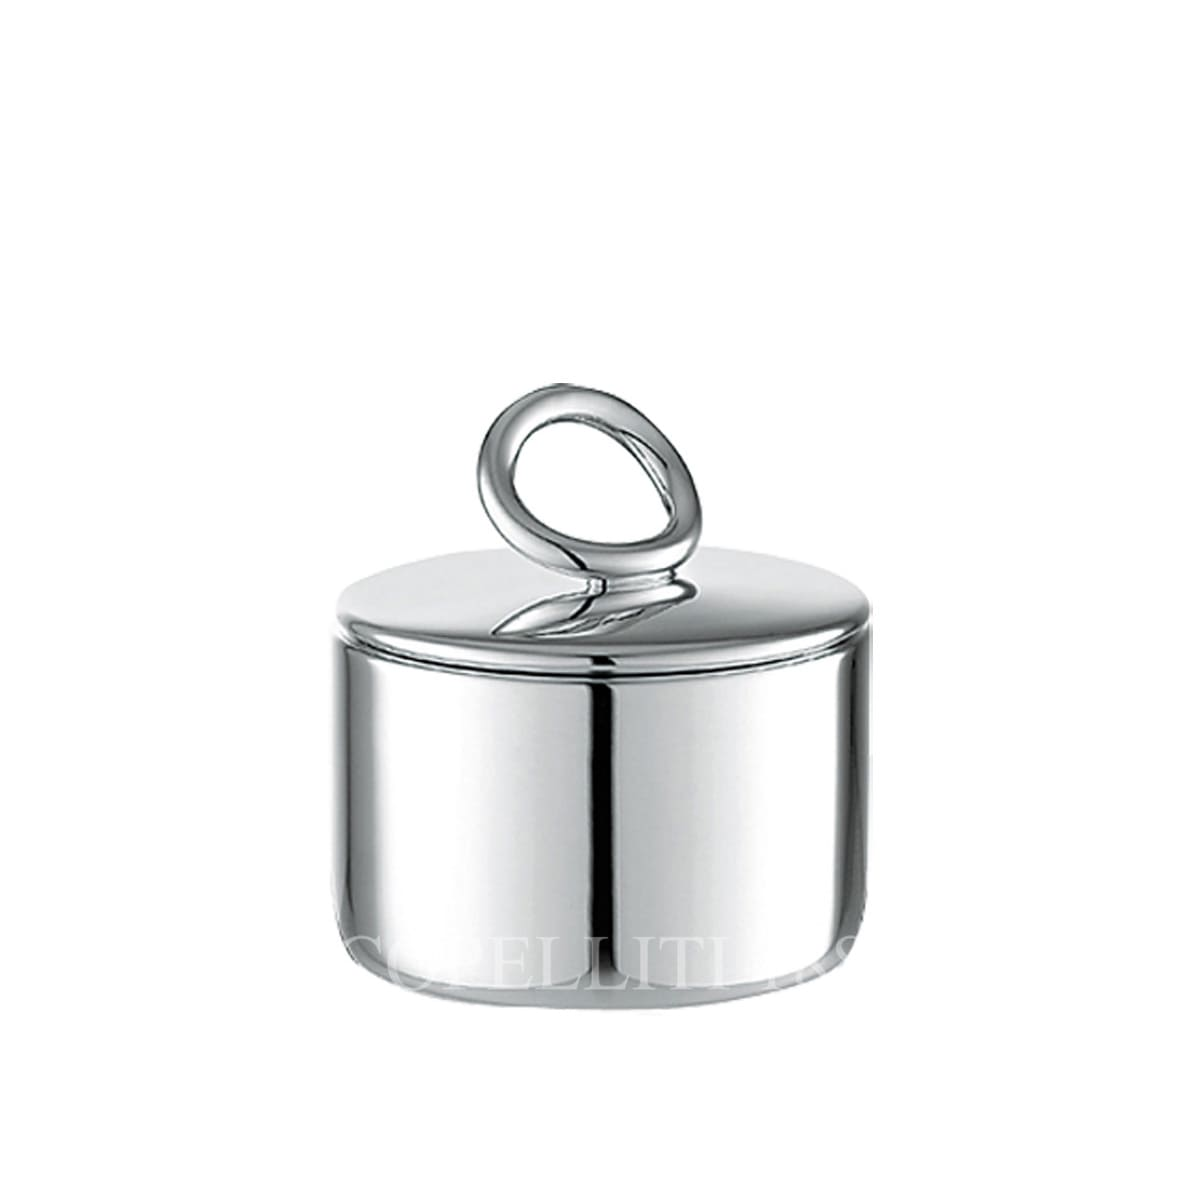 christofle silver plated vertigo sugar box